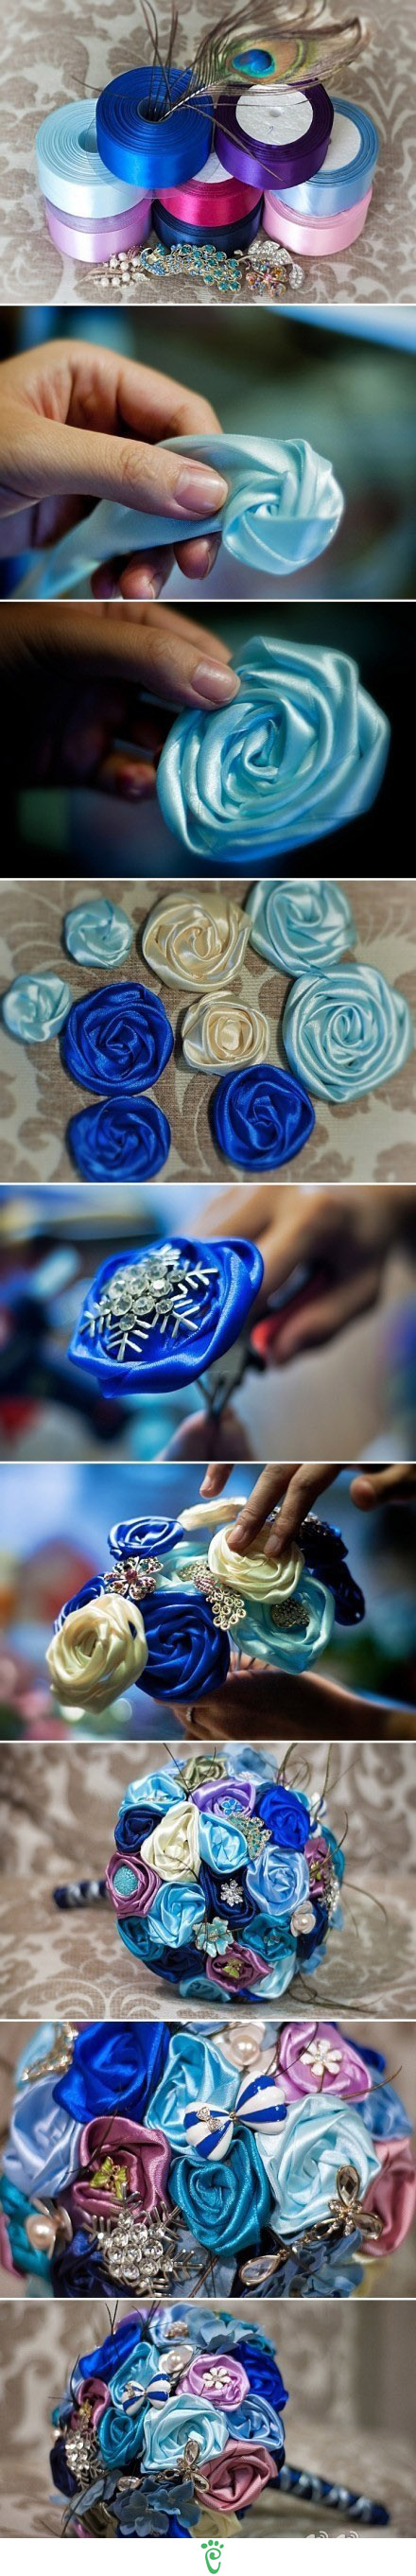 Diy Wedding Bouquets Without Flowers : Diy ribbon flower bouquet pictures photos and images for